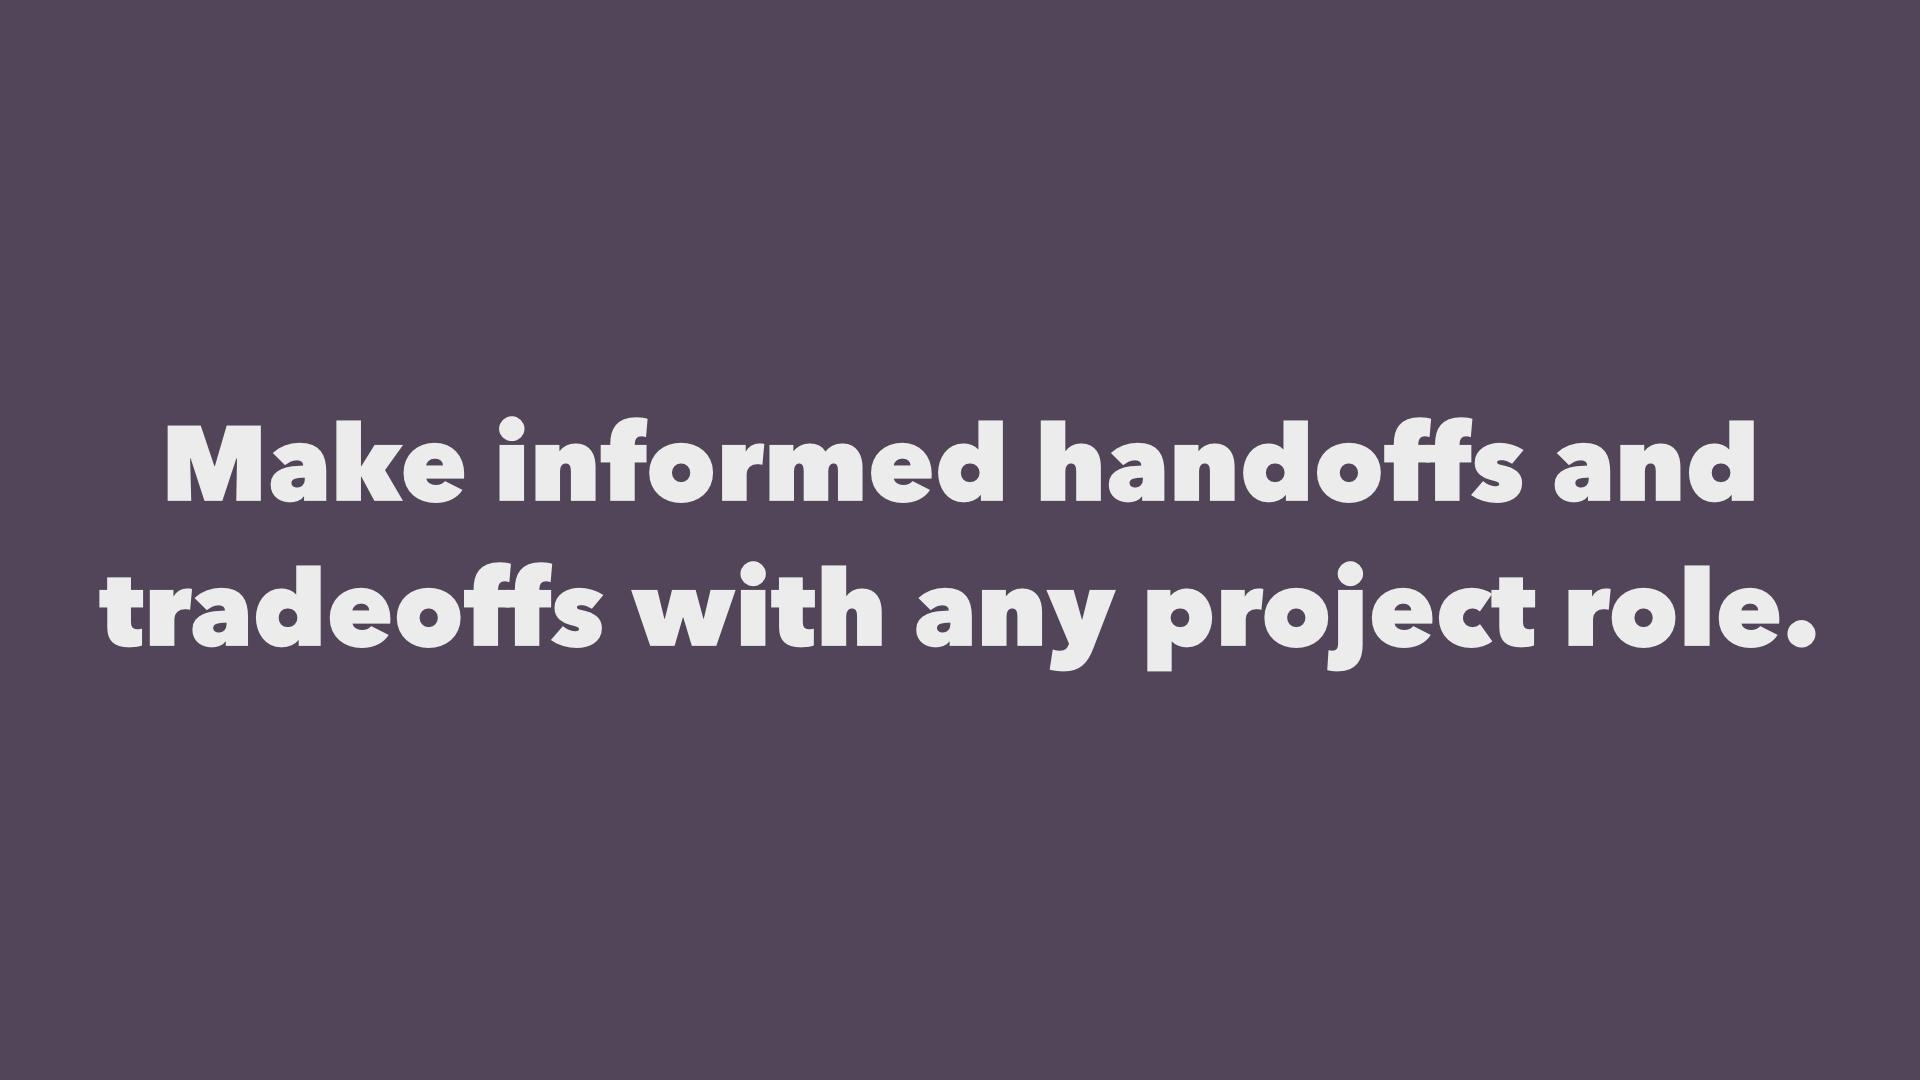 Make informed handoffs and tradeoffs with any project role.